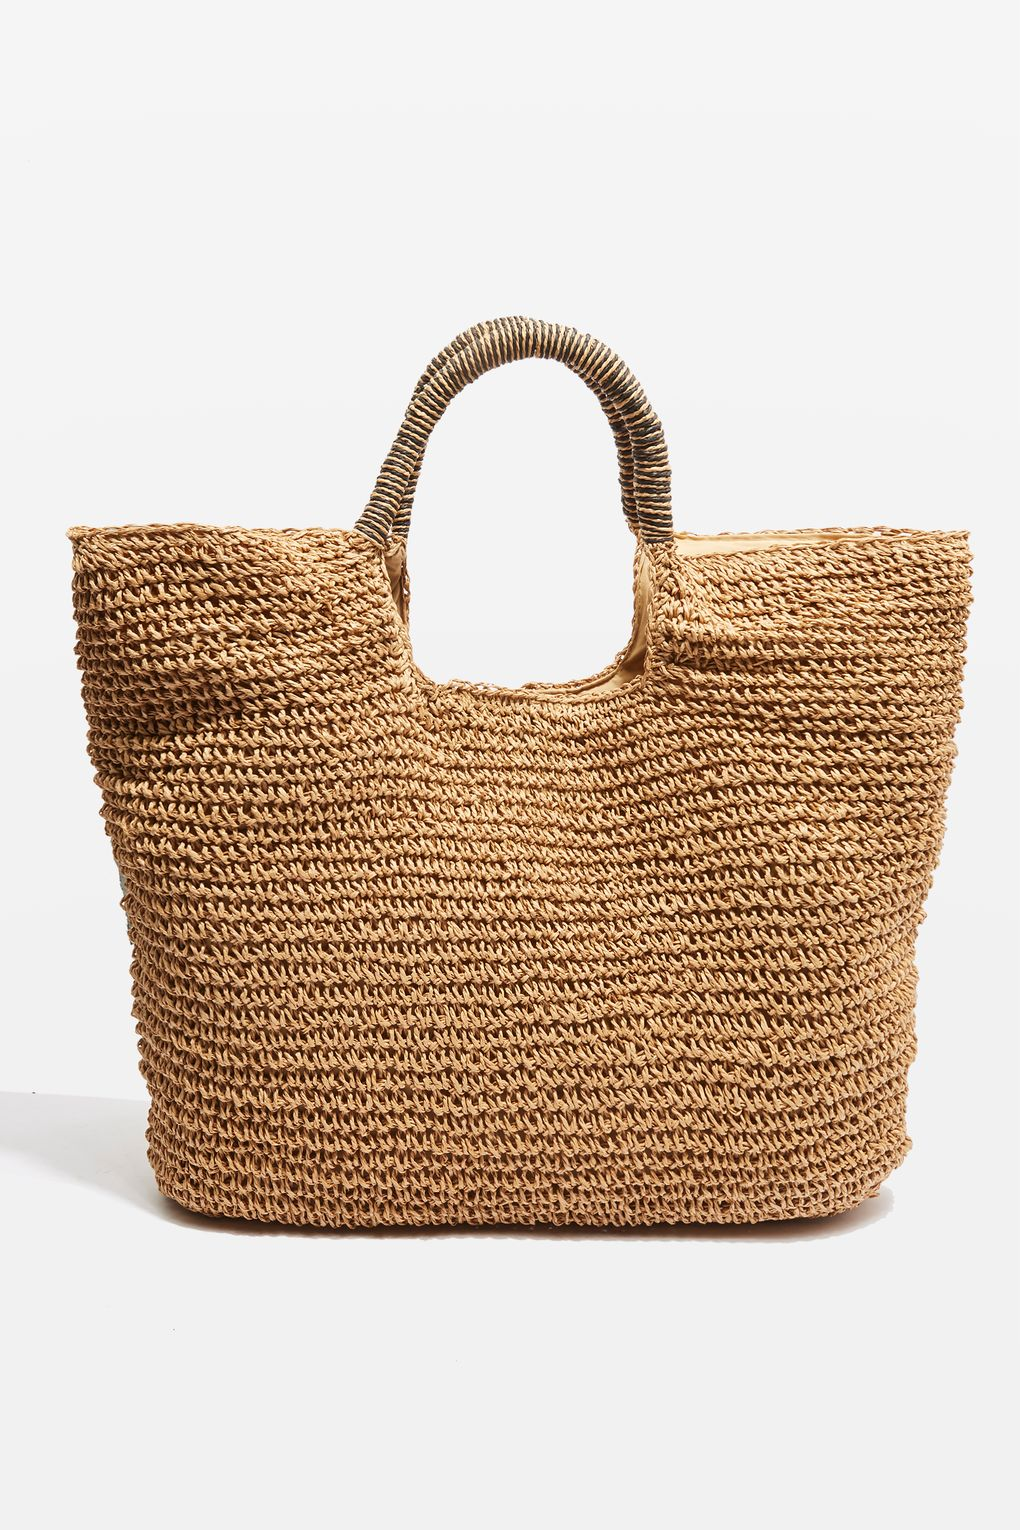 Topshop straw tote, £22